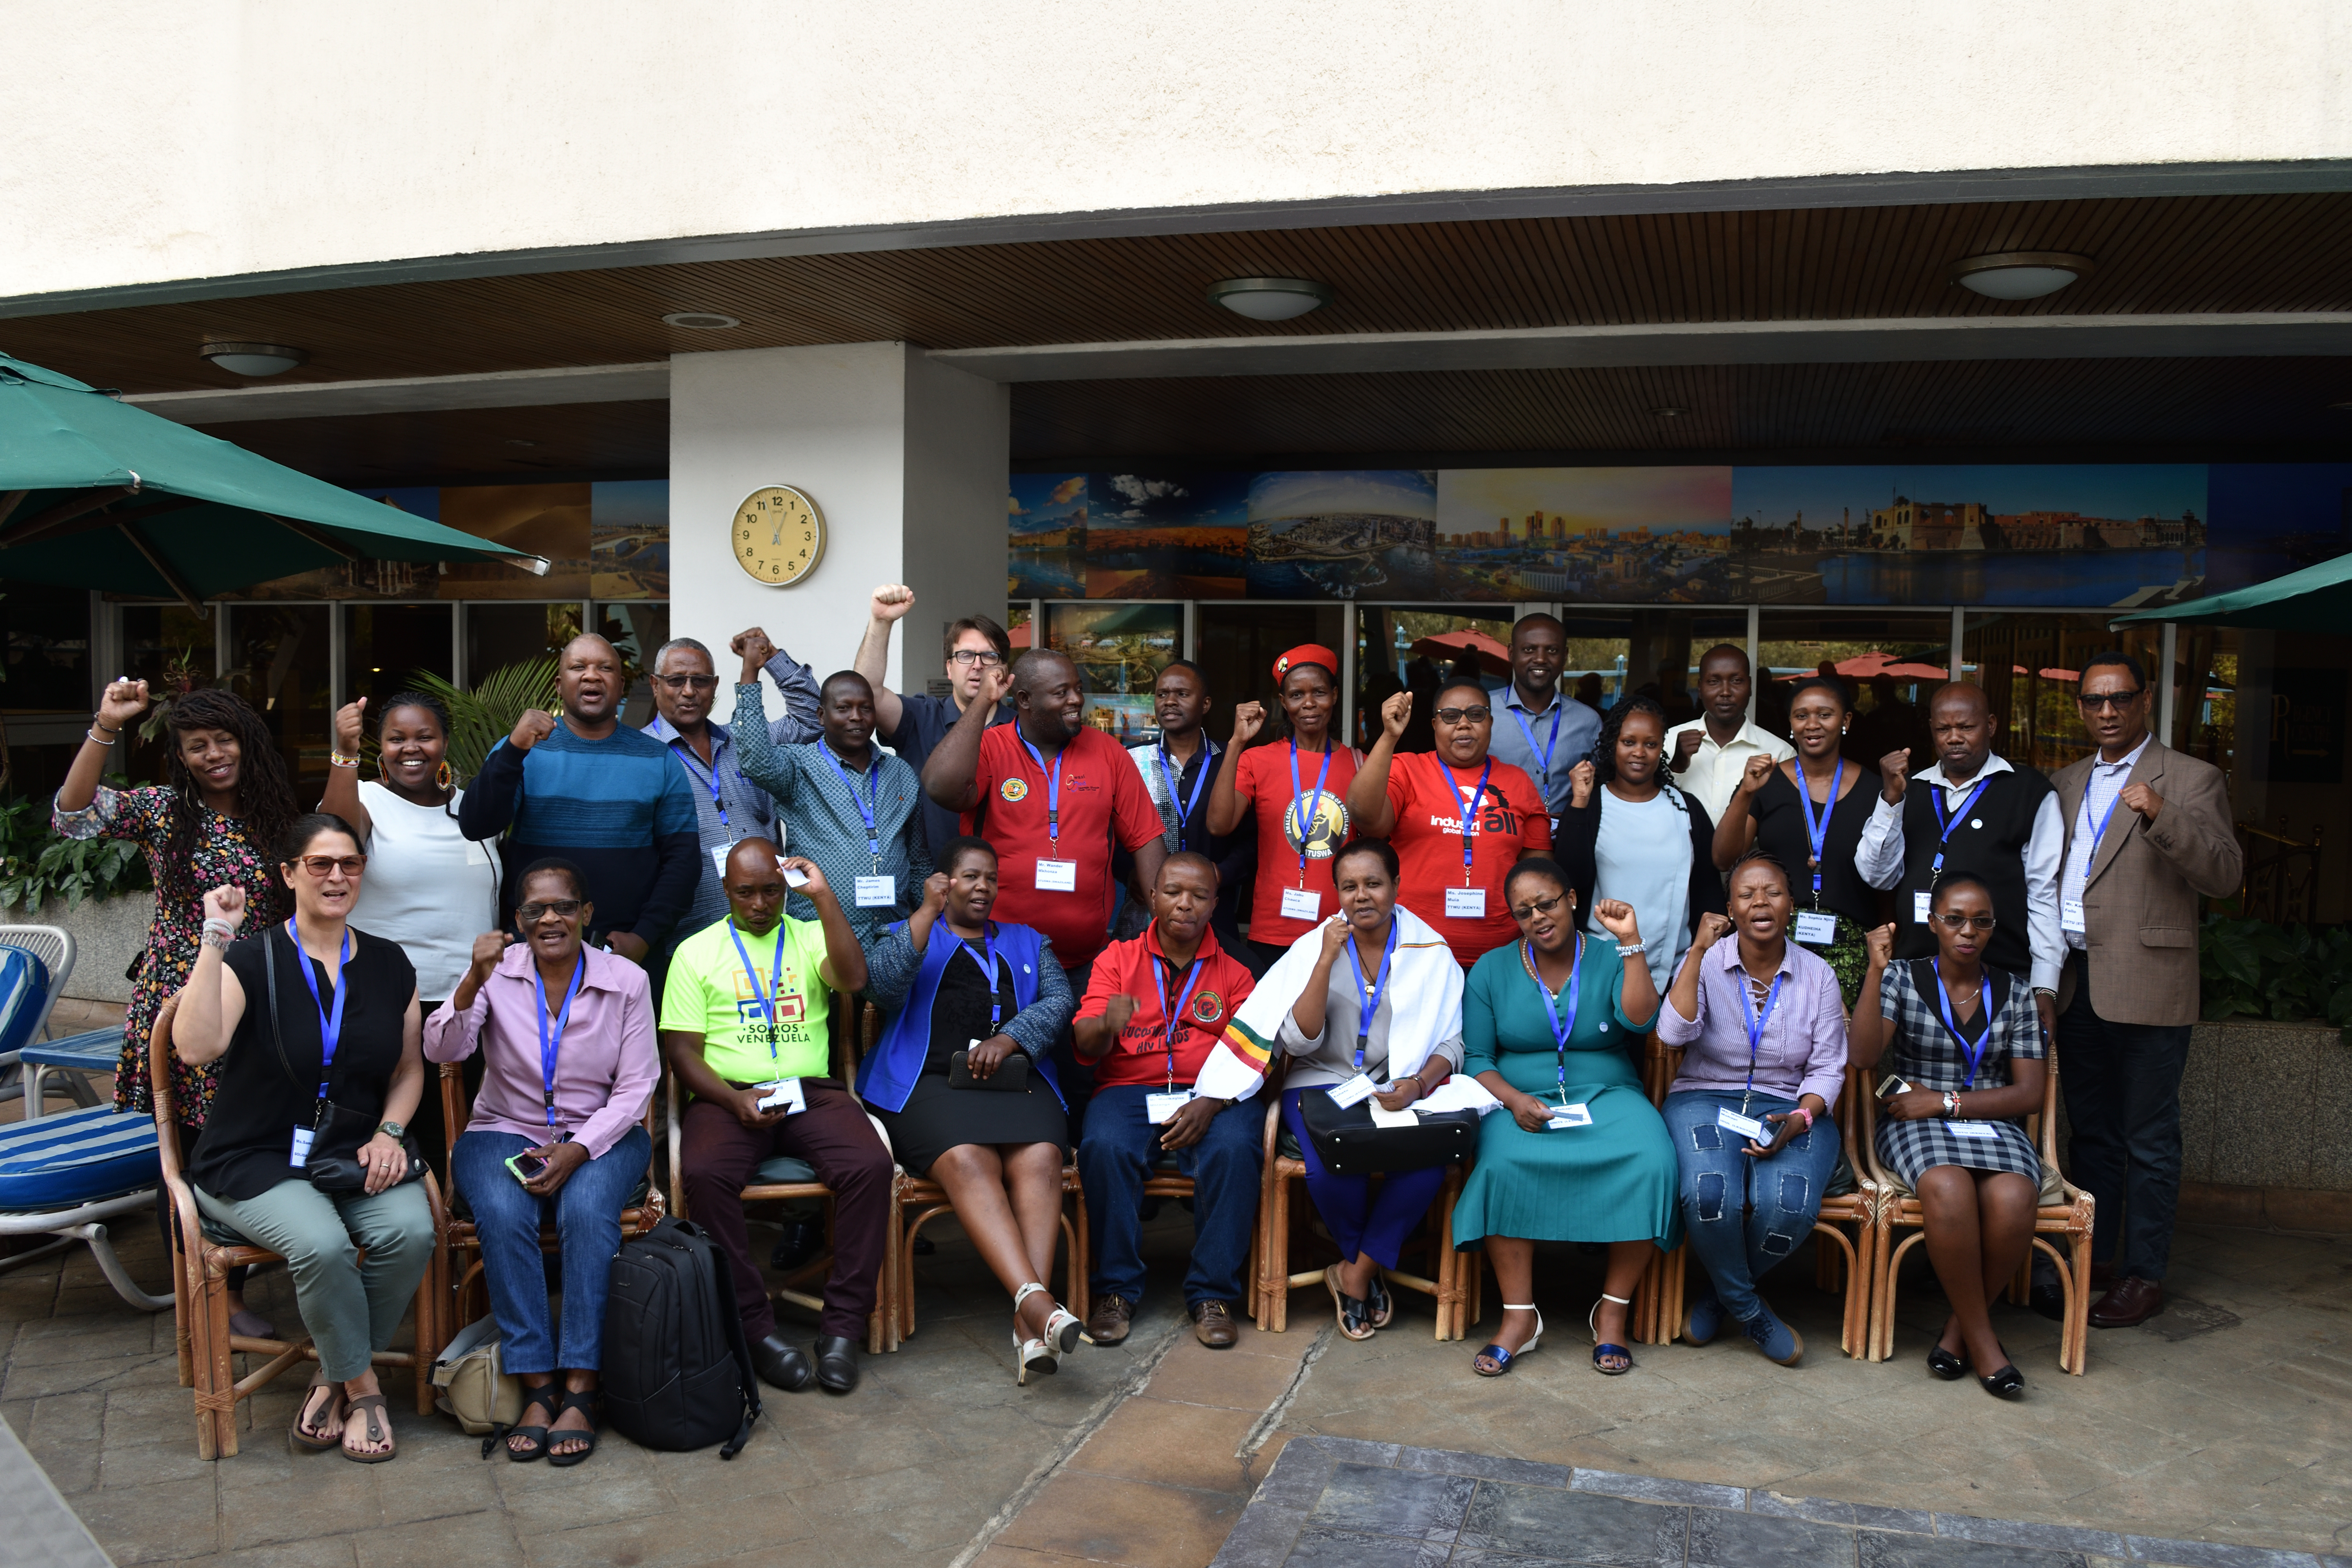 African textile, leather and garment unions meeting strategizes on AGOA